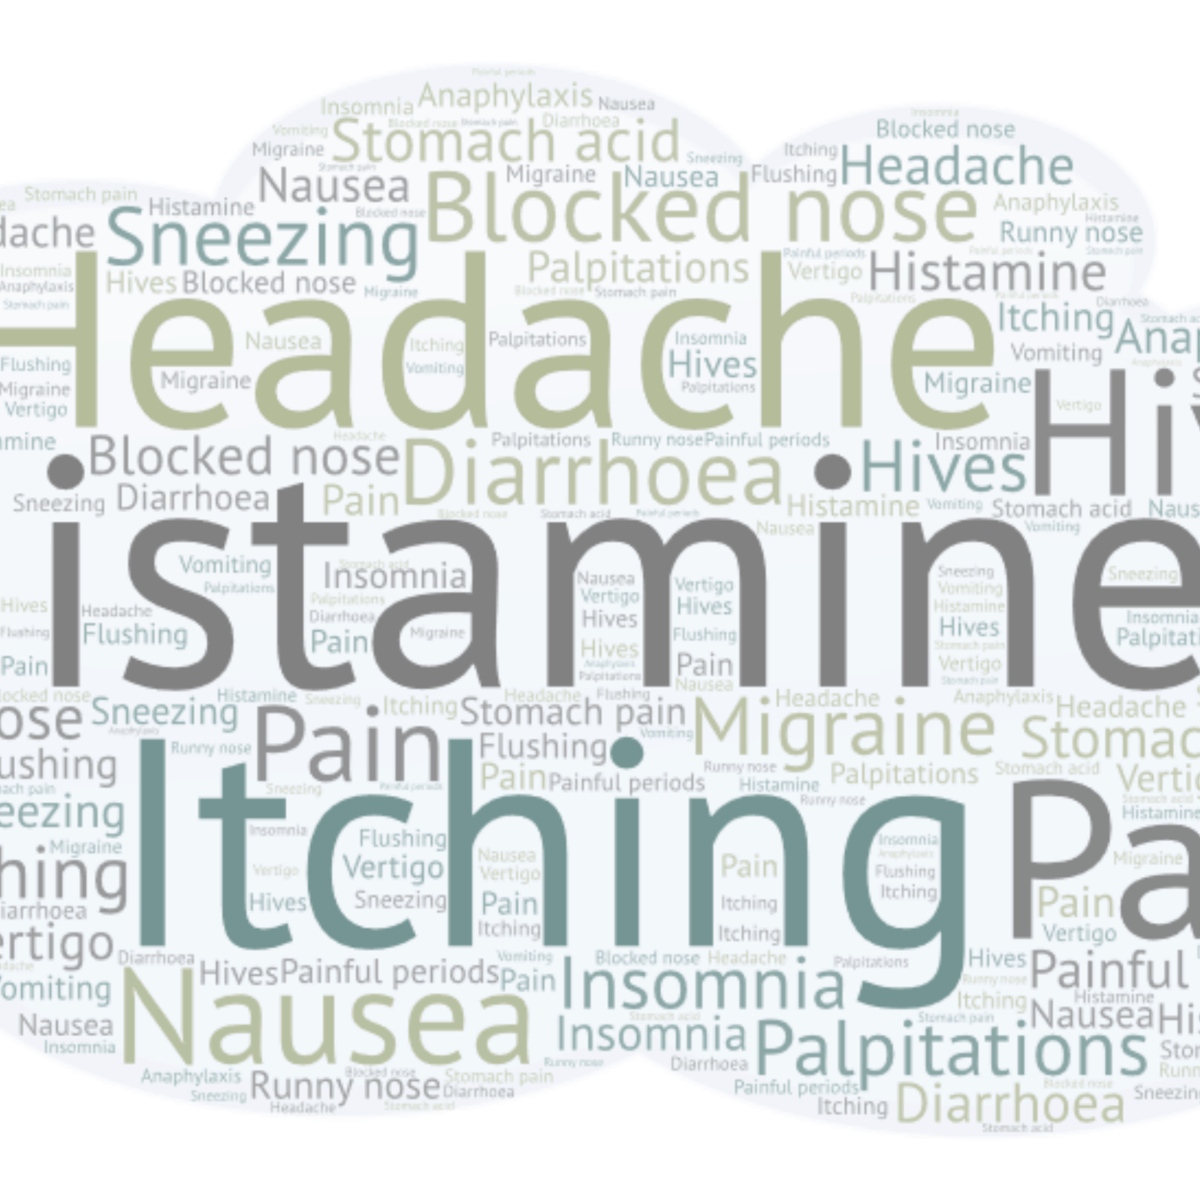 The multiple symptoms of histamine intolerance